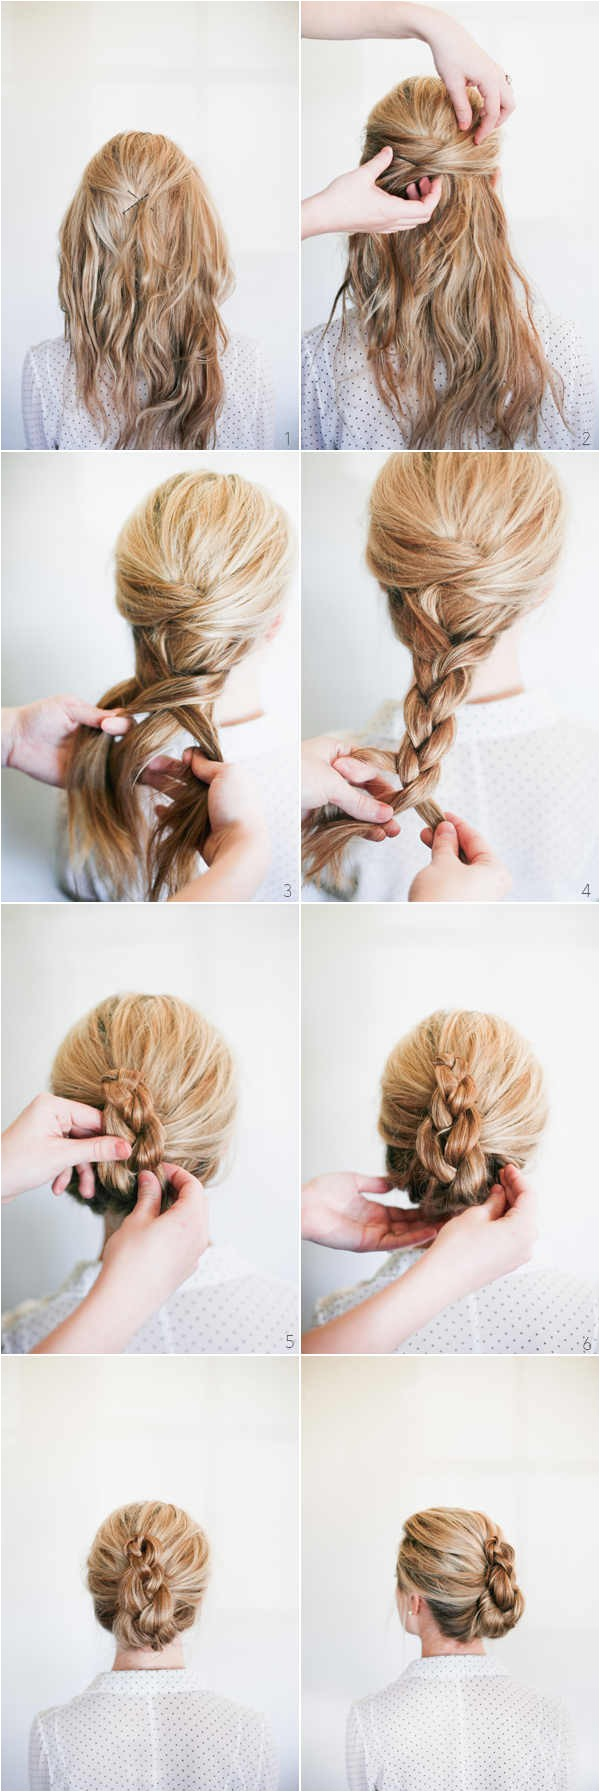 updo hairstyles step by step